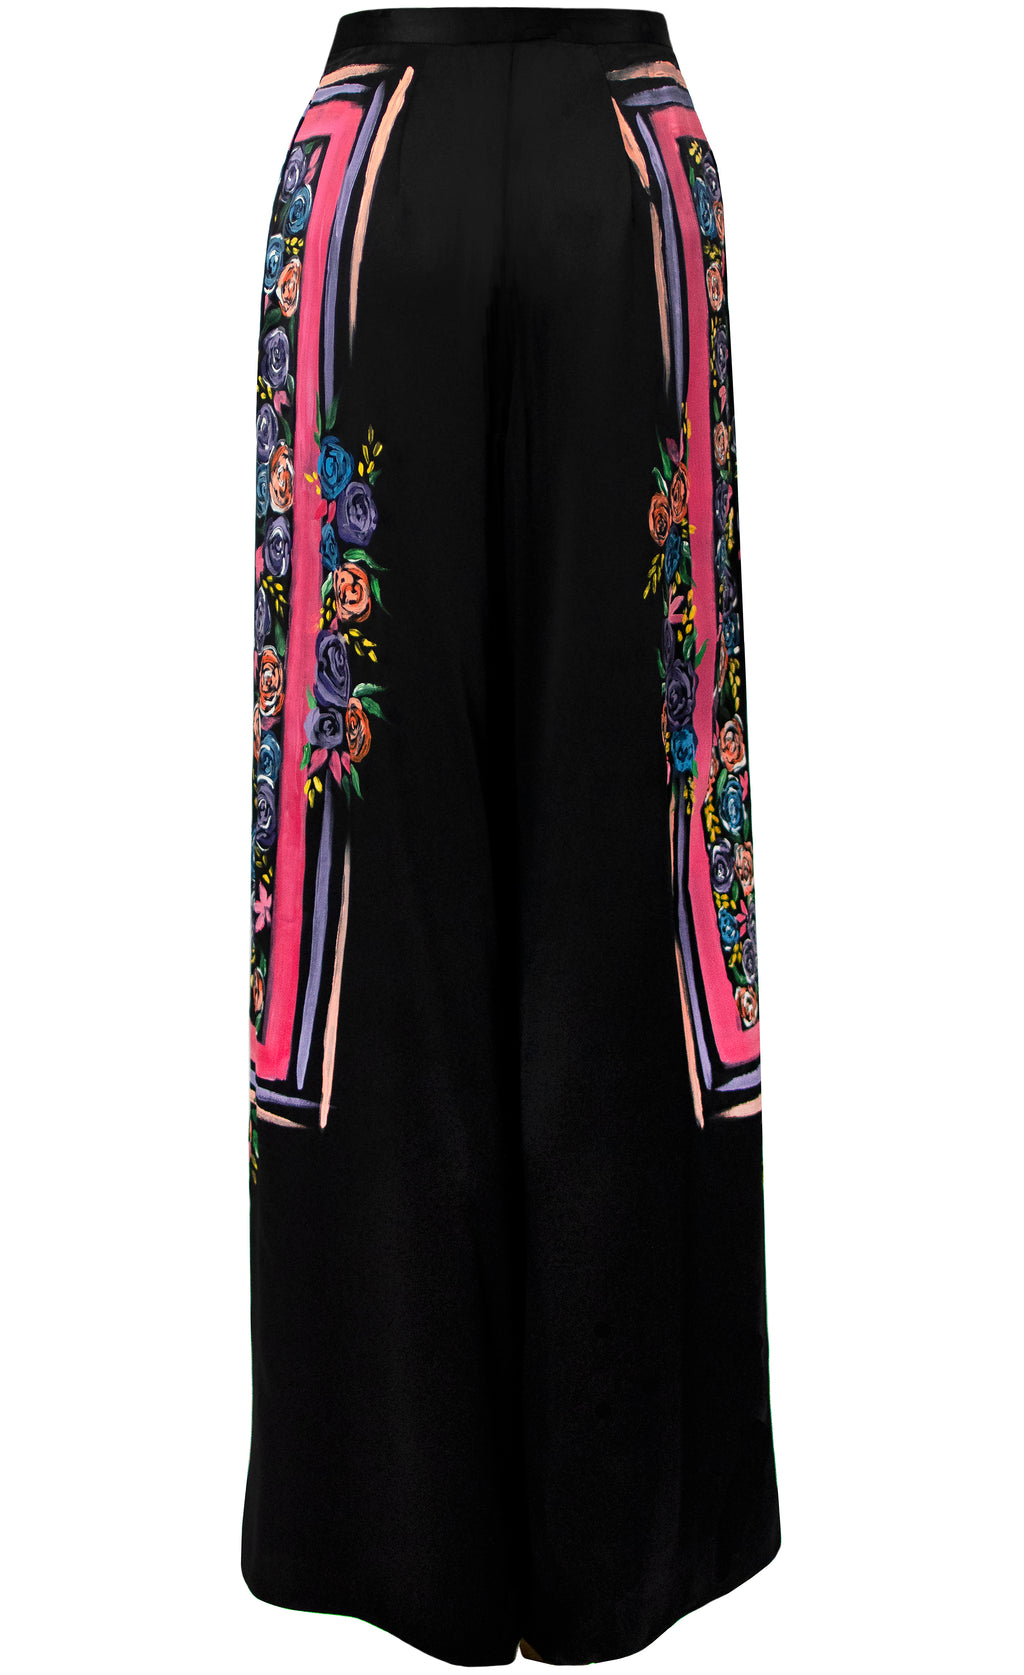 Marienye Painted Black-Satin Pant - KxLNewYork